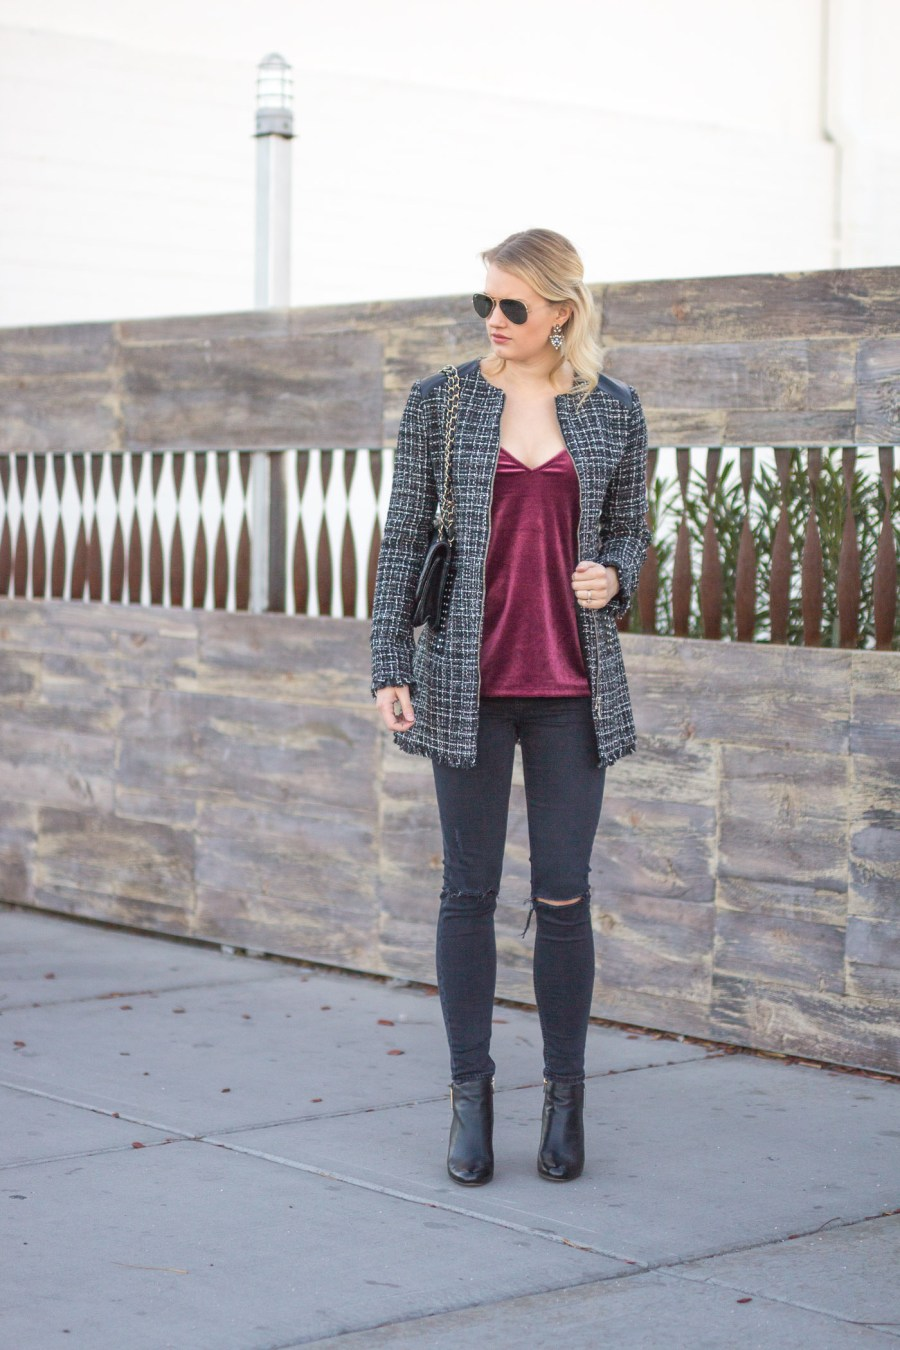 how to style a tweed coat, ZARA tweed coat, fashion blog, Treats and Trends, winter outfit idea